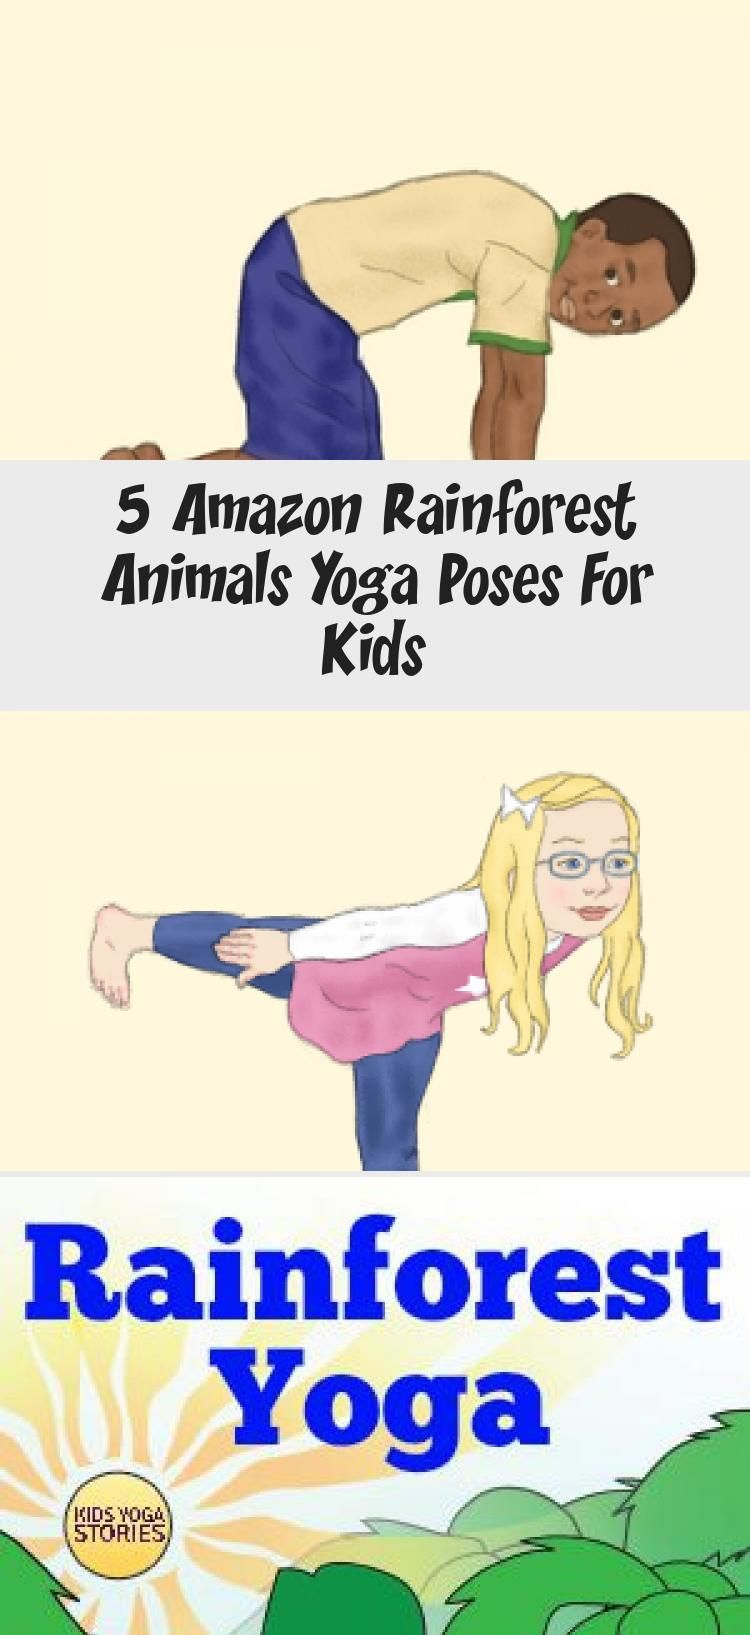 5 Easy And Fun Amazon Rainforest Animal Yoga Poses For Kids